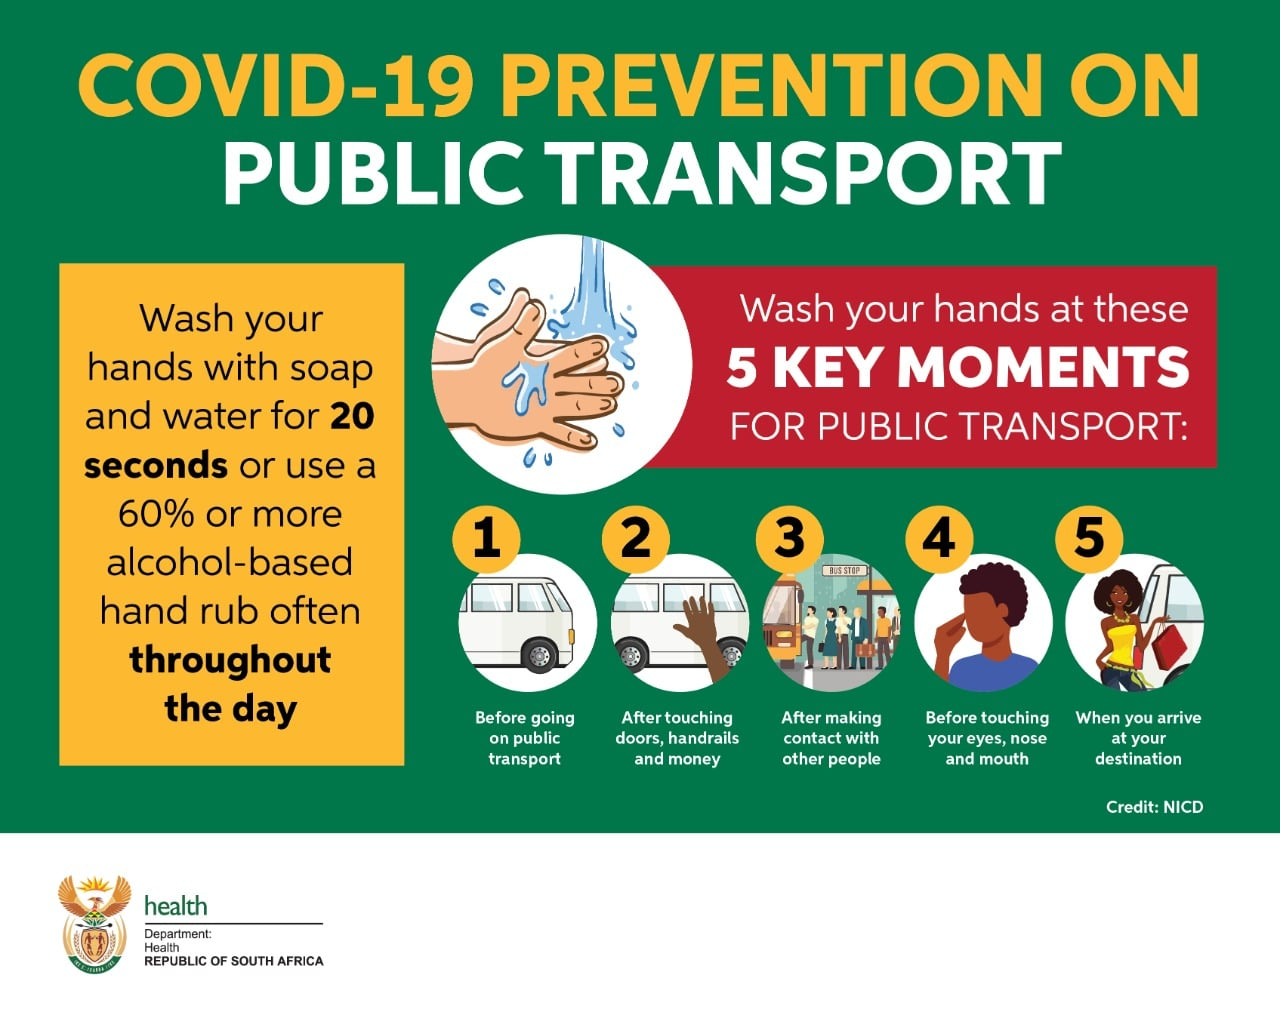 COVID 19 Prevention On Public Transport SA Corona Virus